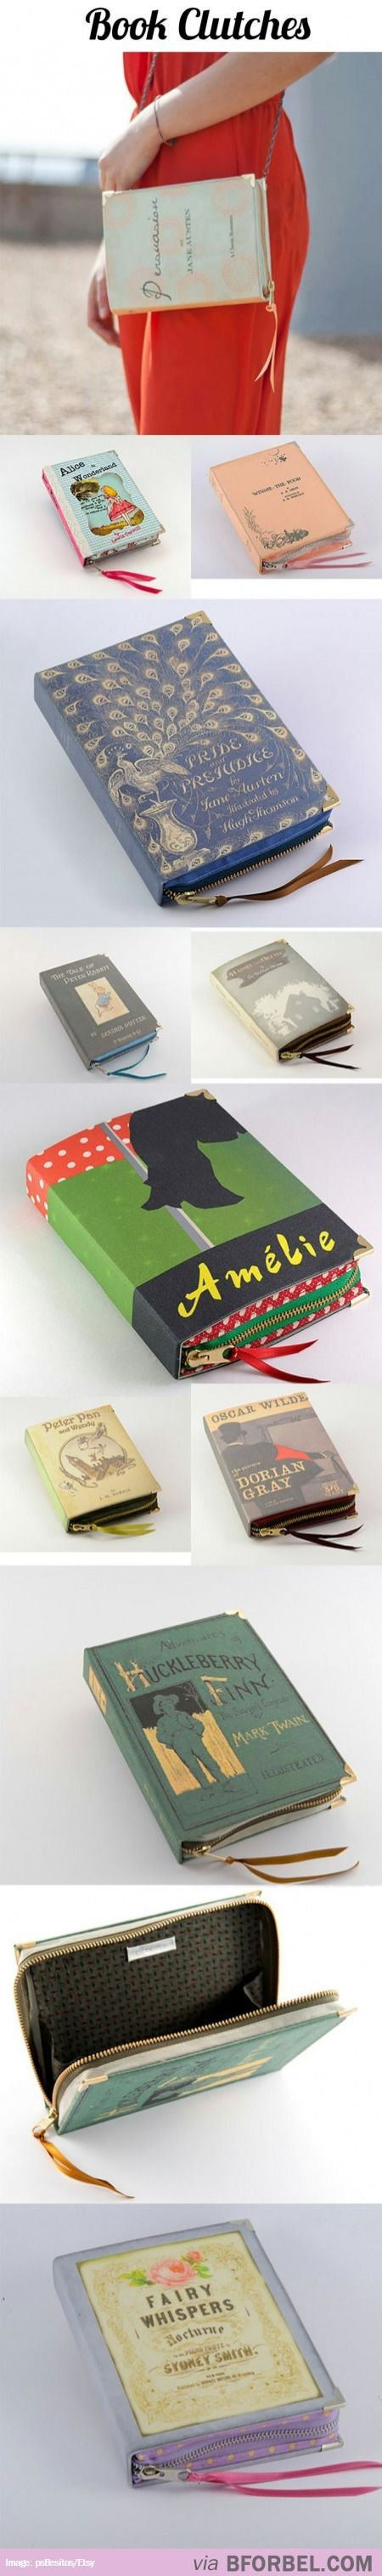 Clutches Made From Book Covers… Will Sell Kidney For One.